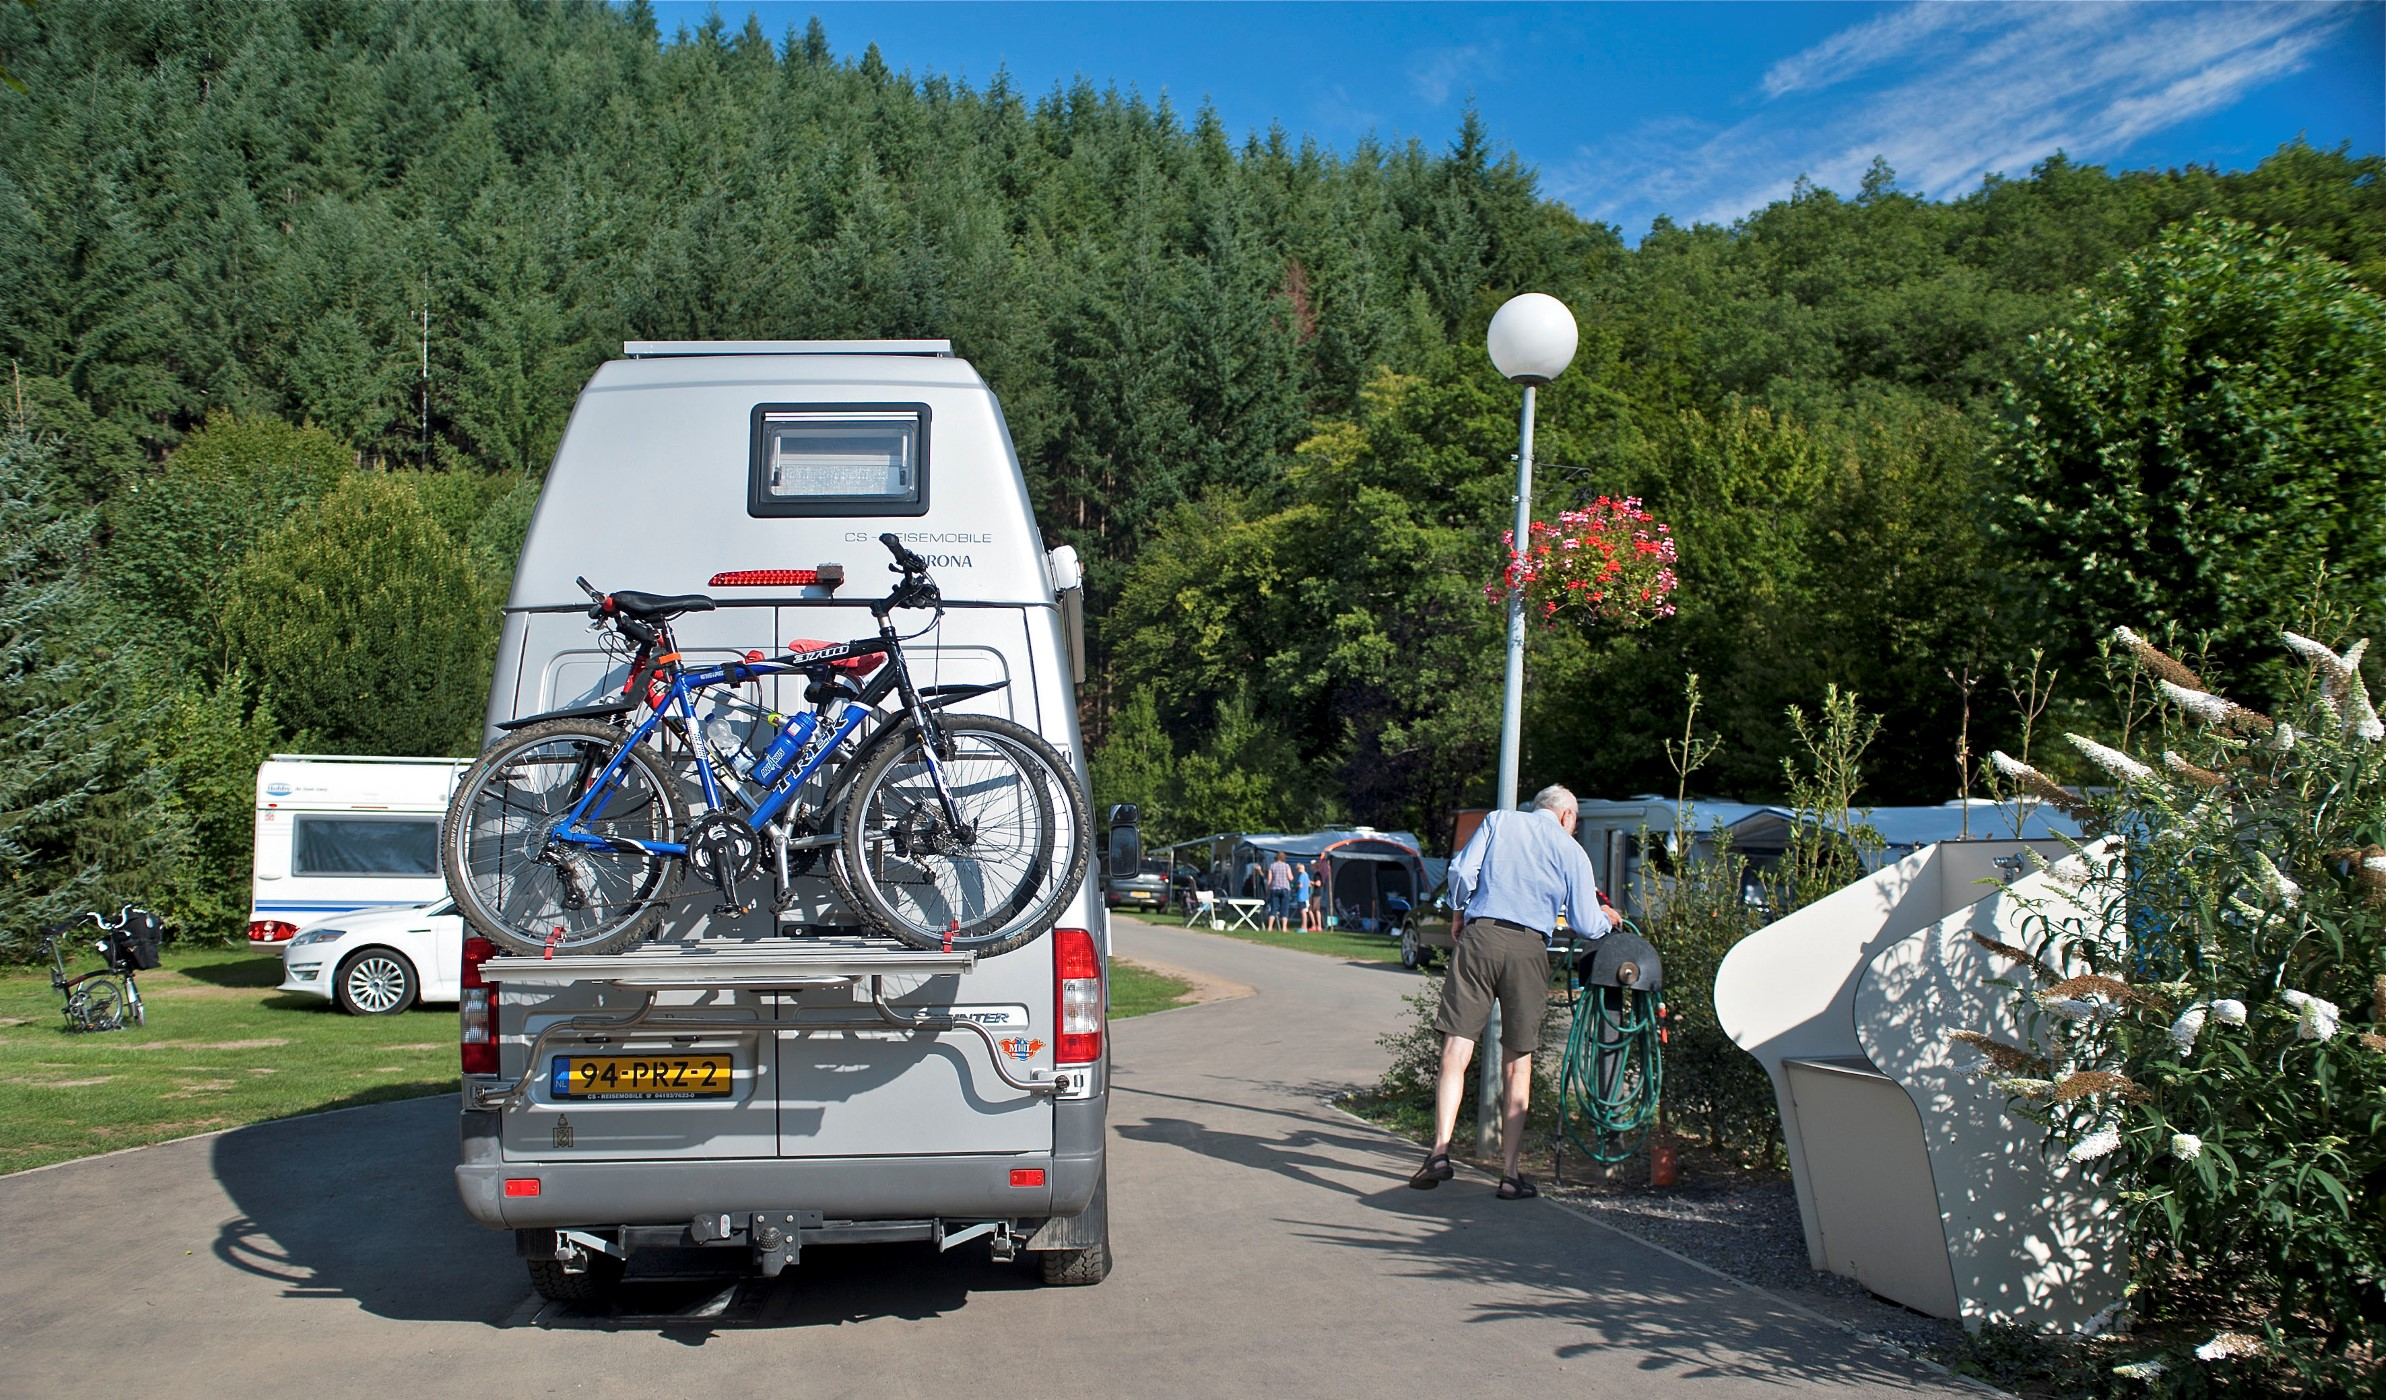 Camper Service Station op camping Parc La Clusure Ardennen